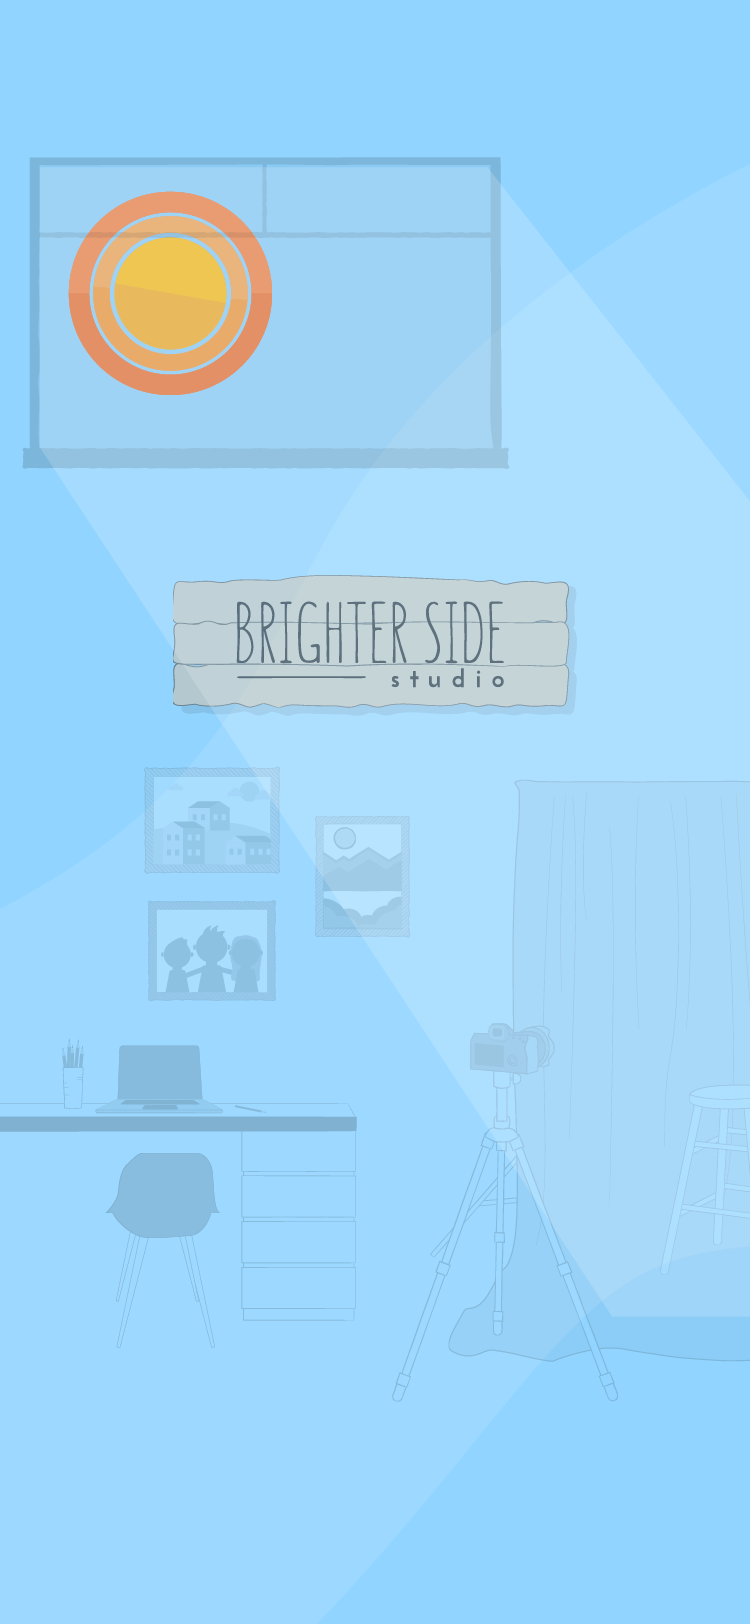 Brighter Side Studio